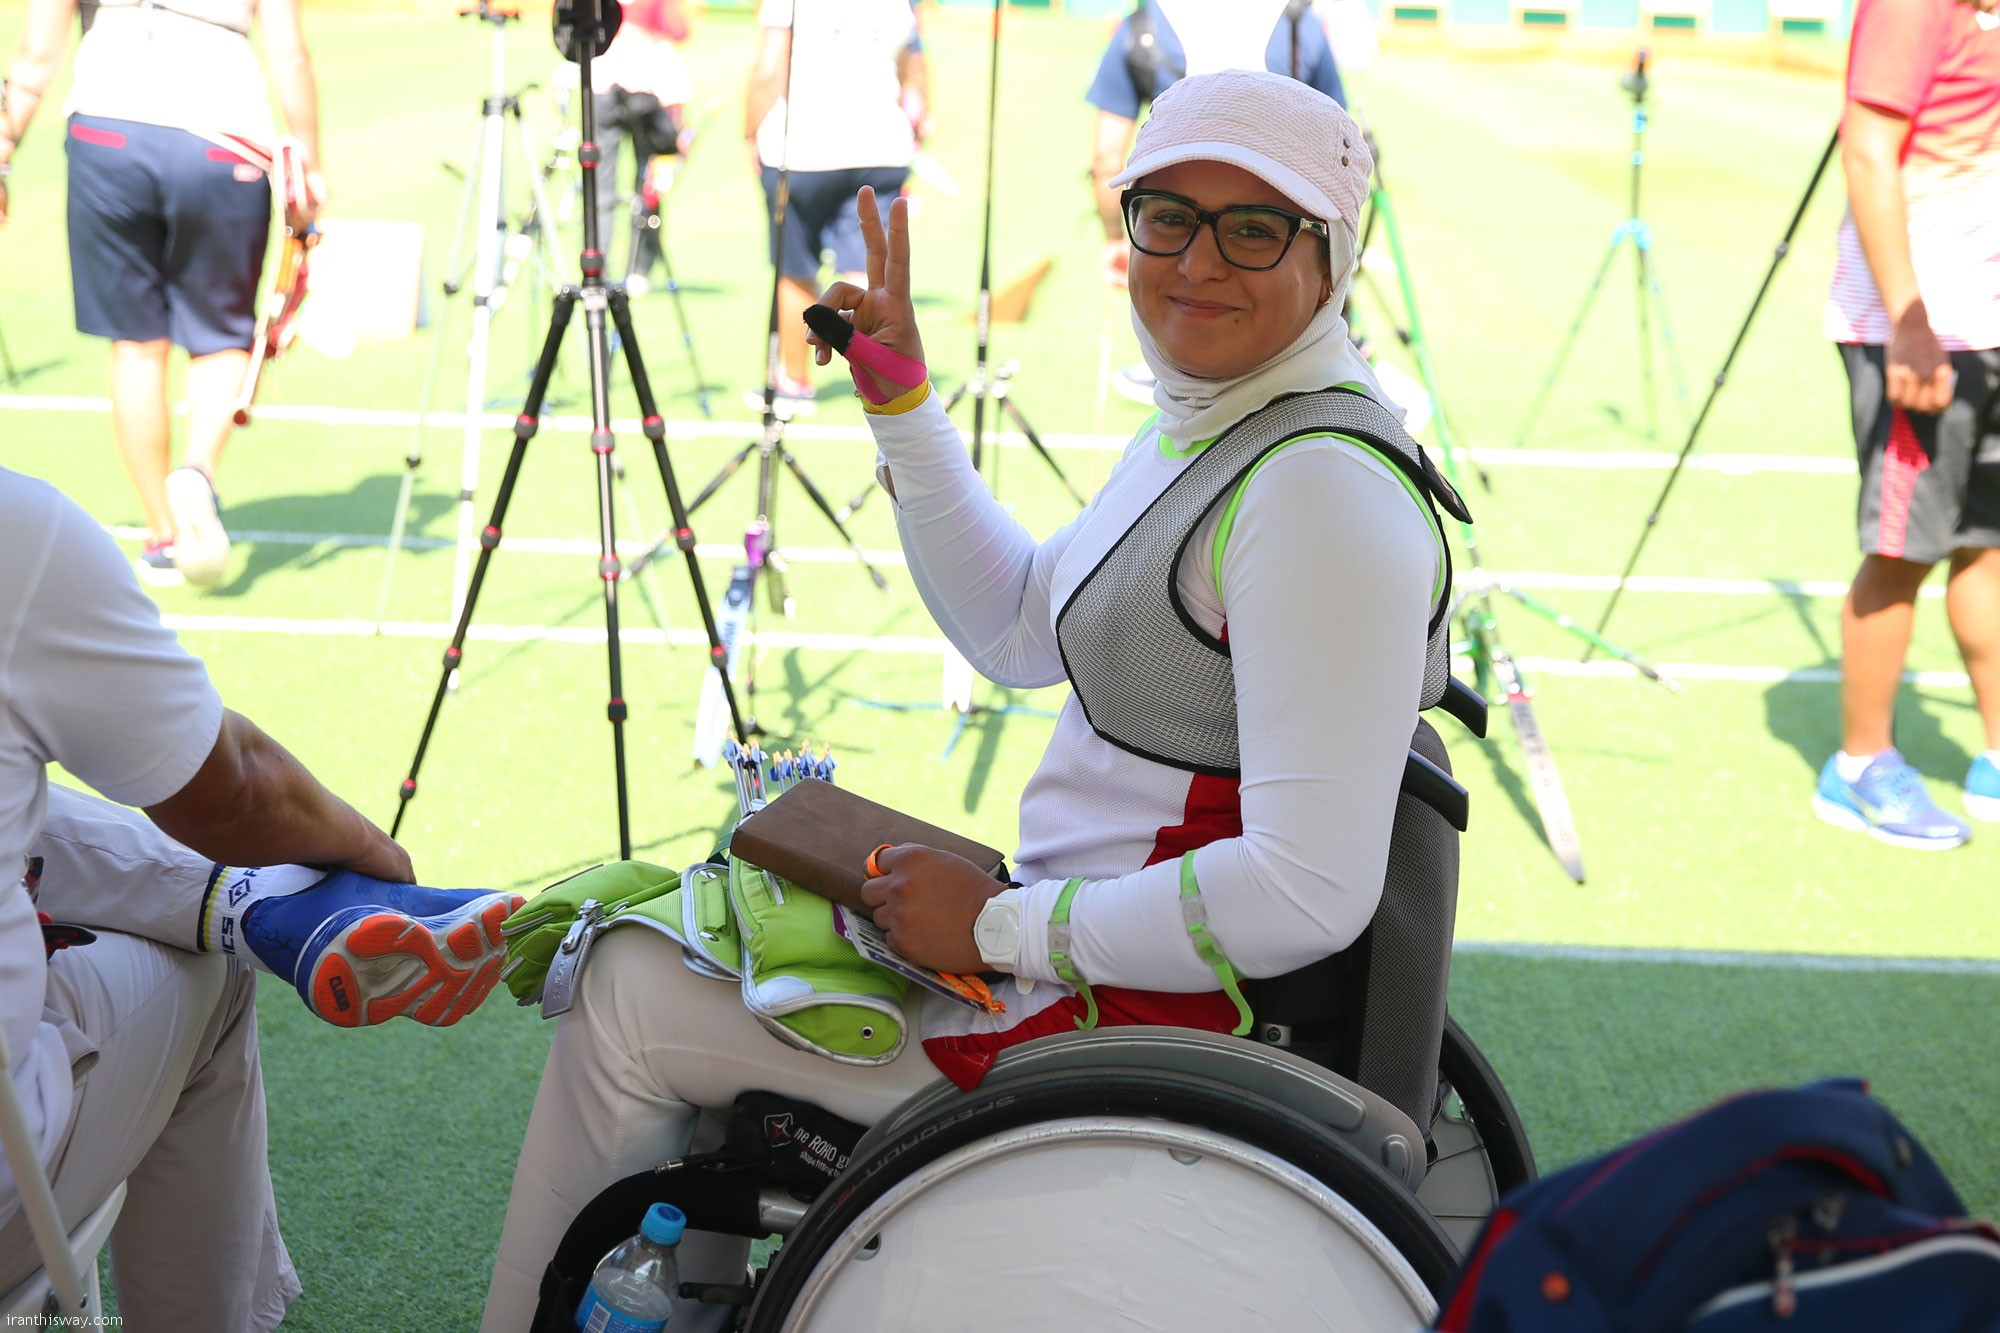 Iranian woman performance second best in Rio 2016